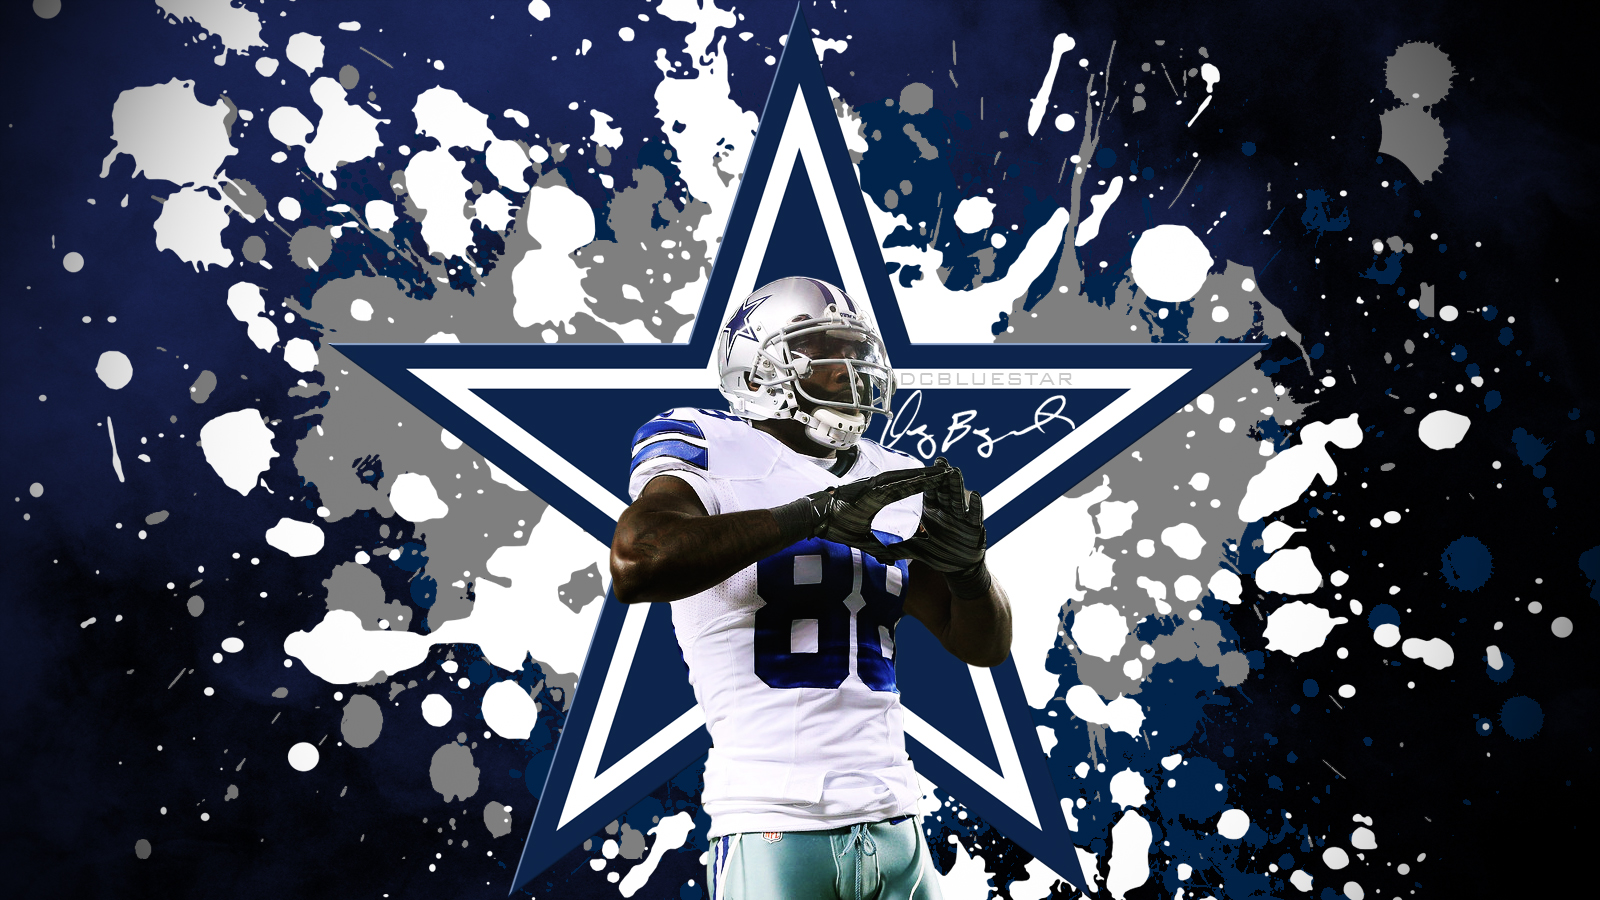 dallas cowboys wallpapers for android